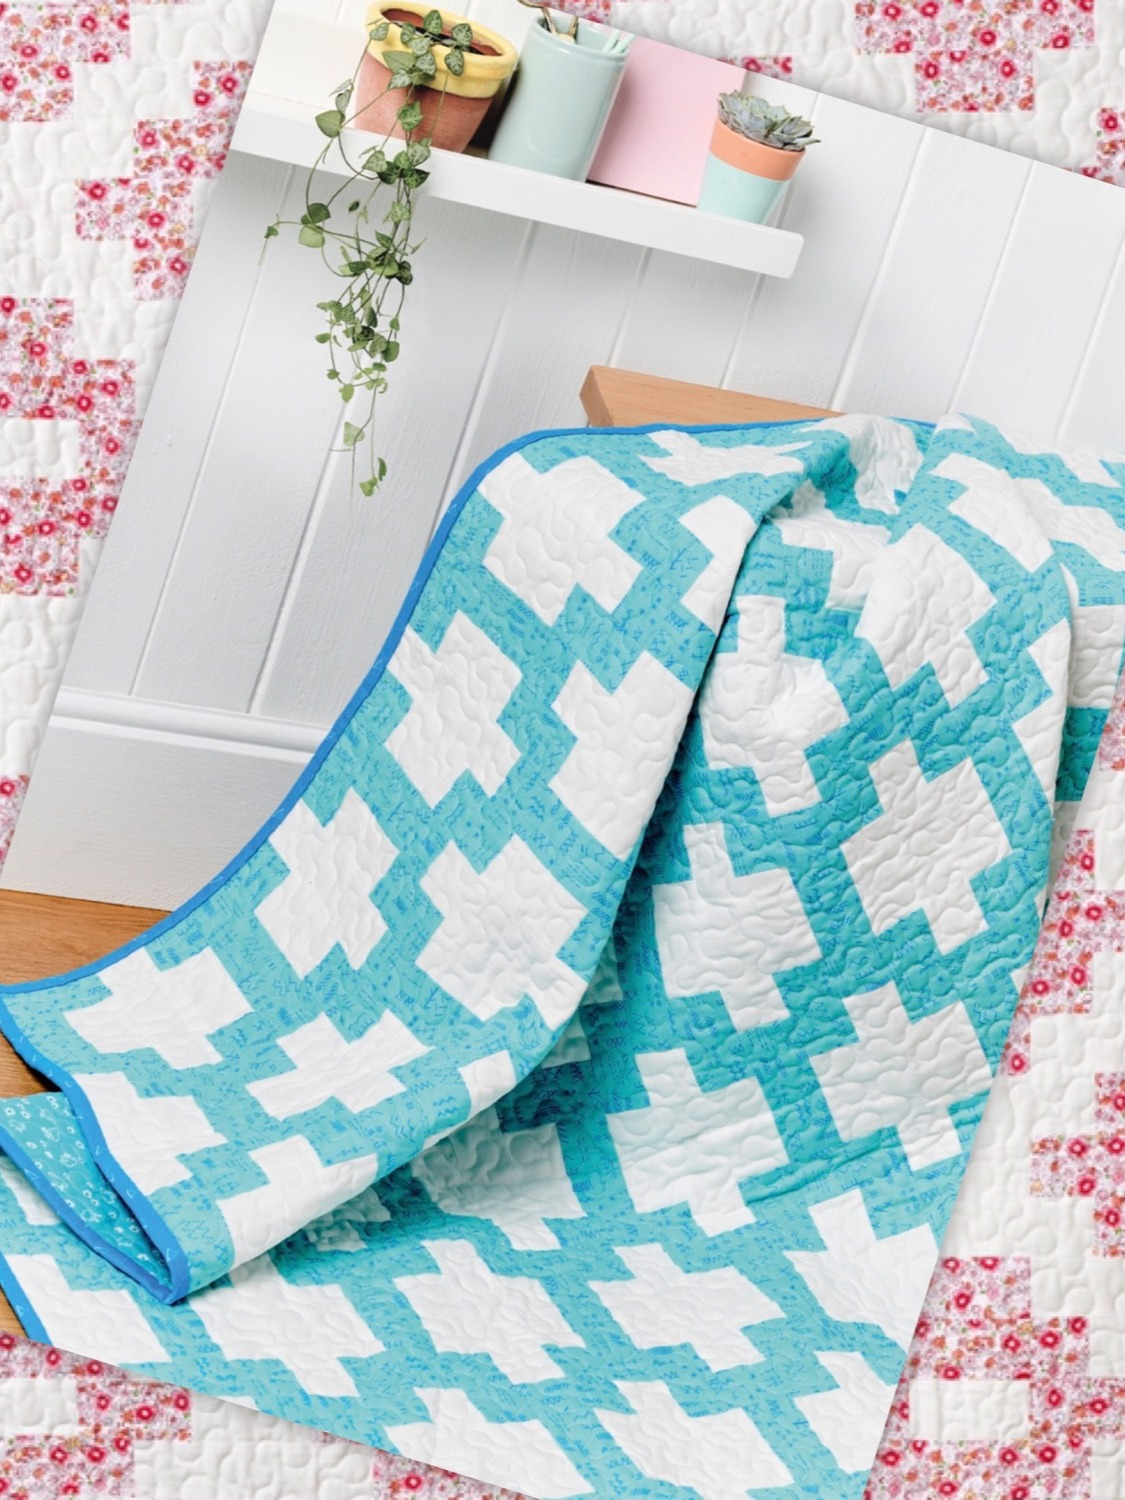 Bright Skies quilt